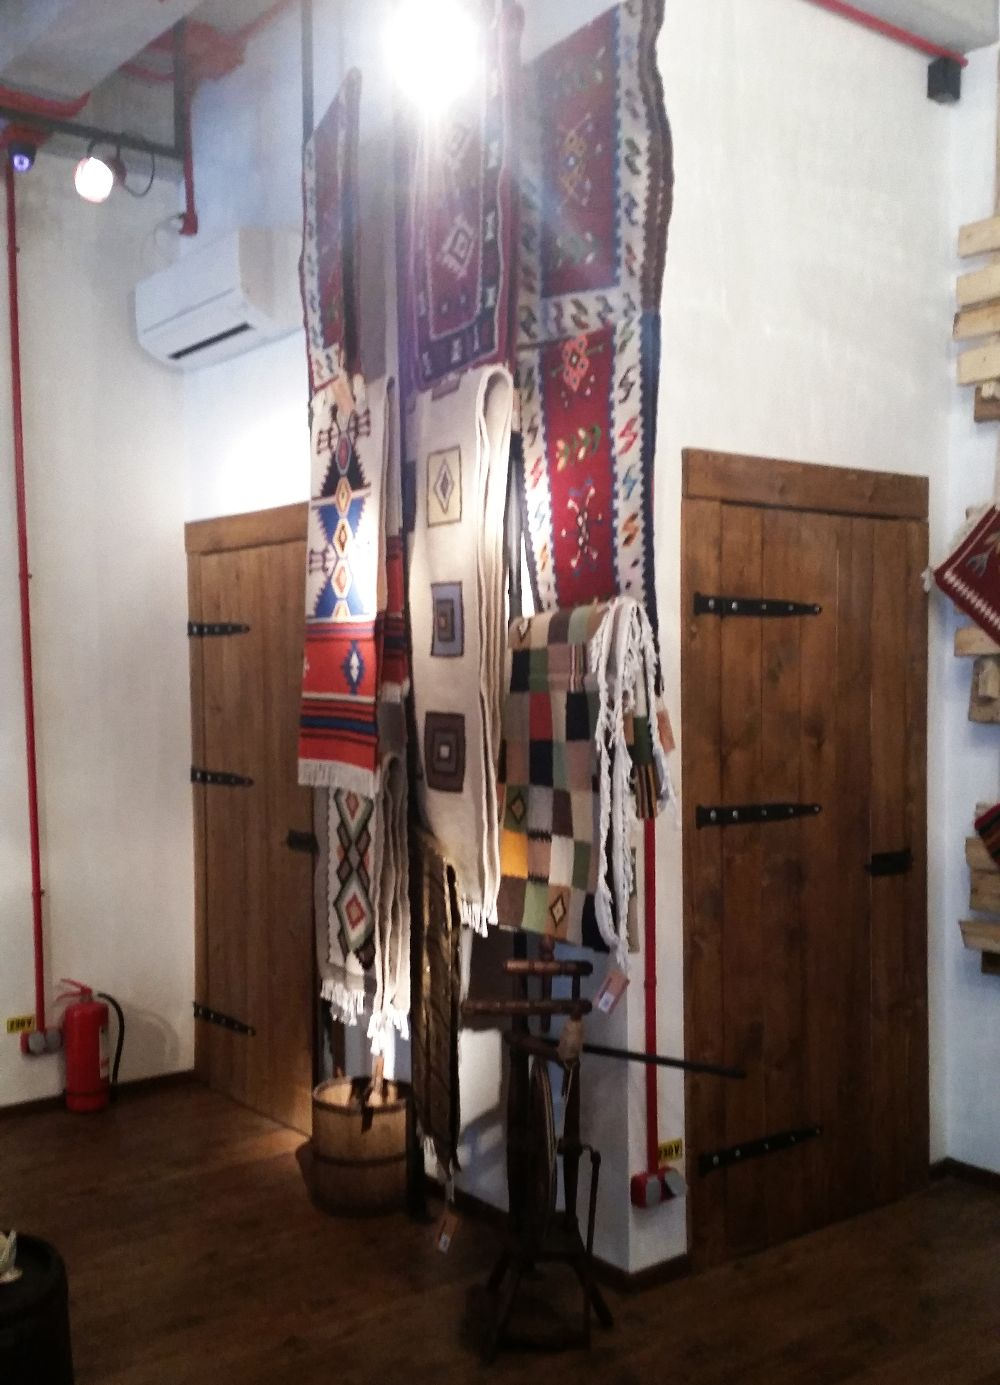 adelaparvu.com despremagazin cu obiecte traditionale, My Romanian Store Bucharest (26)